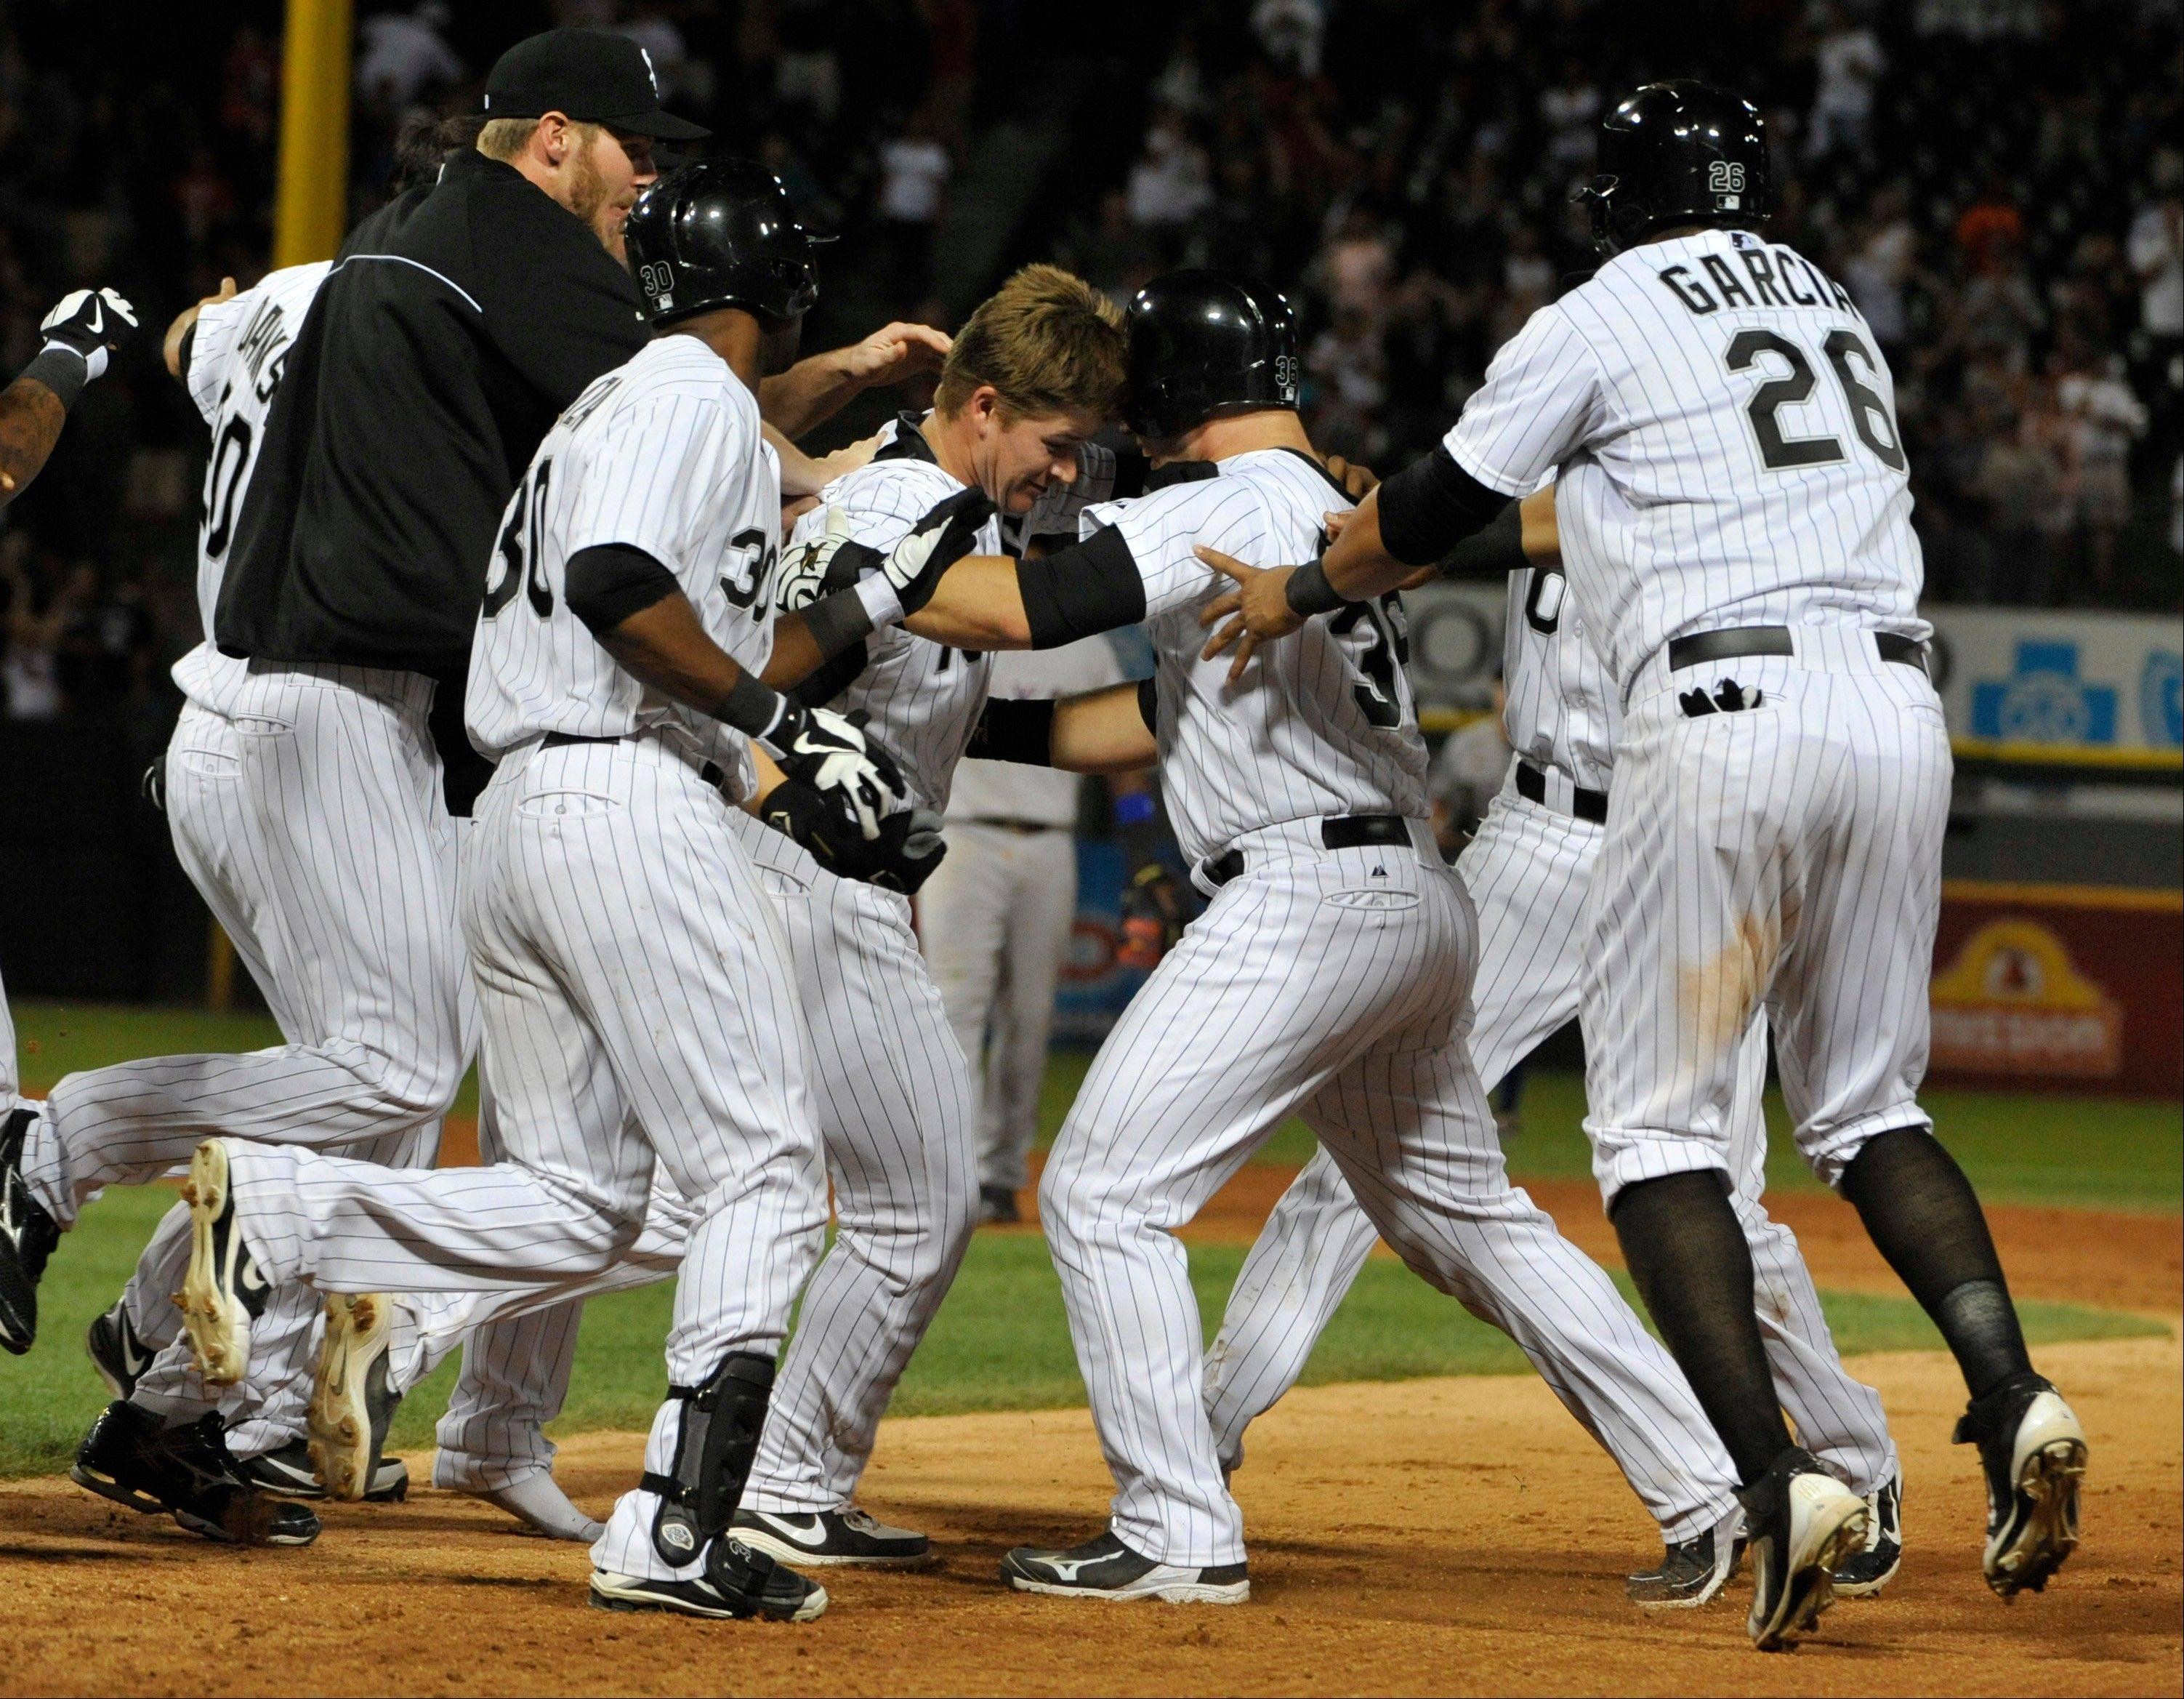 Rookie Josh Phegley, center, is mobbed by his teammates after hitting the game winning hit against the Texas Rangers Saturday at U.S. Cellular Field. The Sox defeated the Texas Rangers' 3-2.